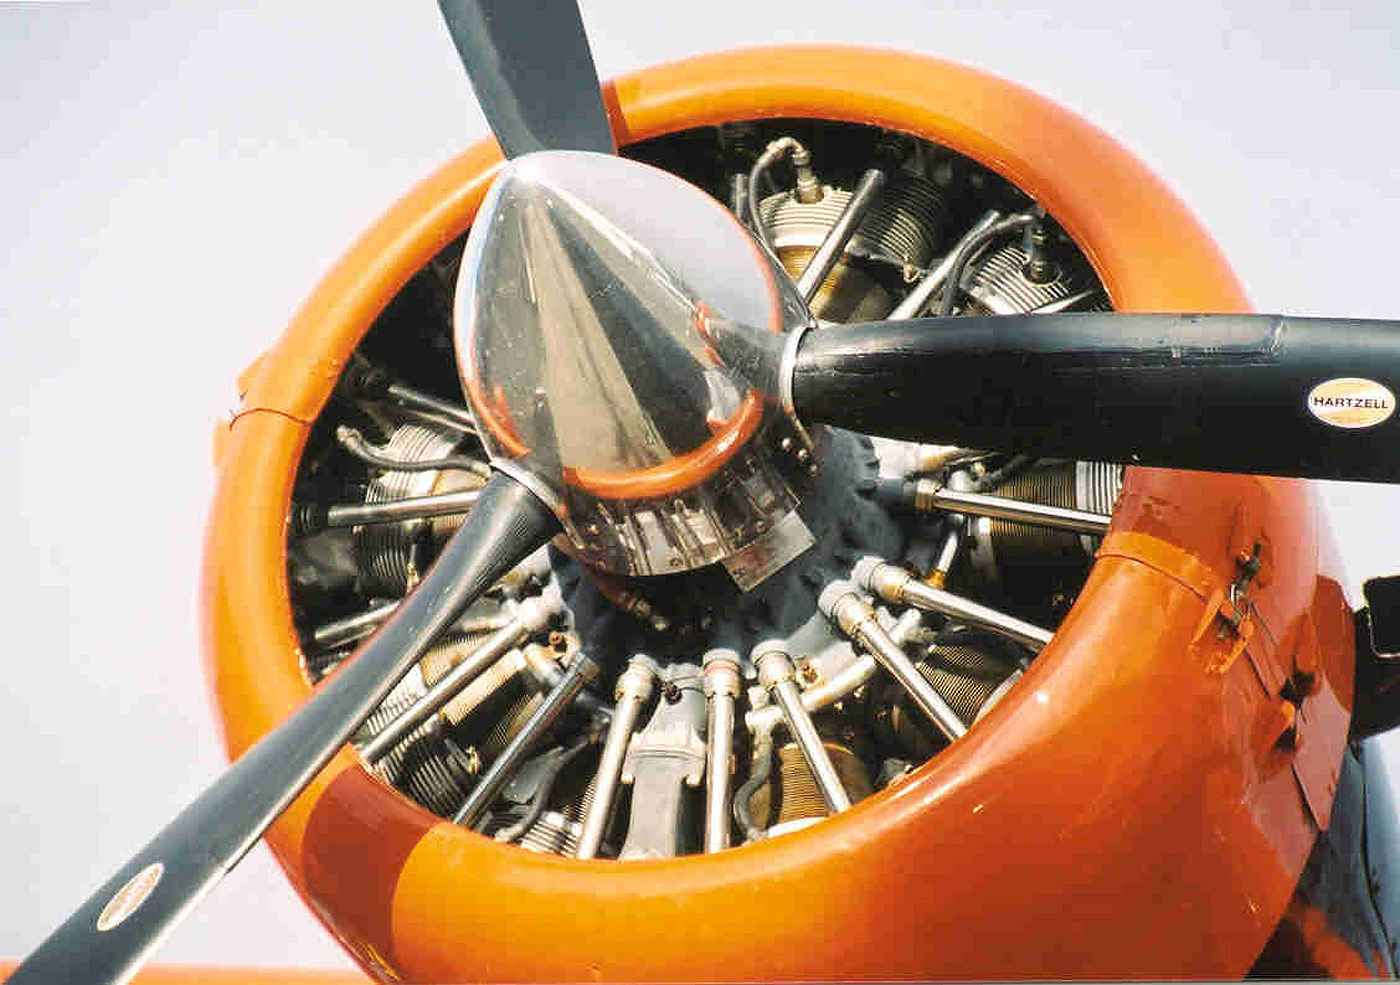 Engine Propellers Aircraft Close